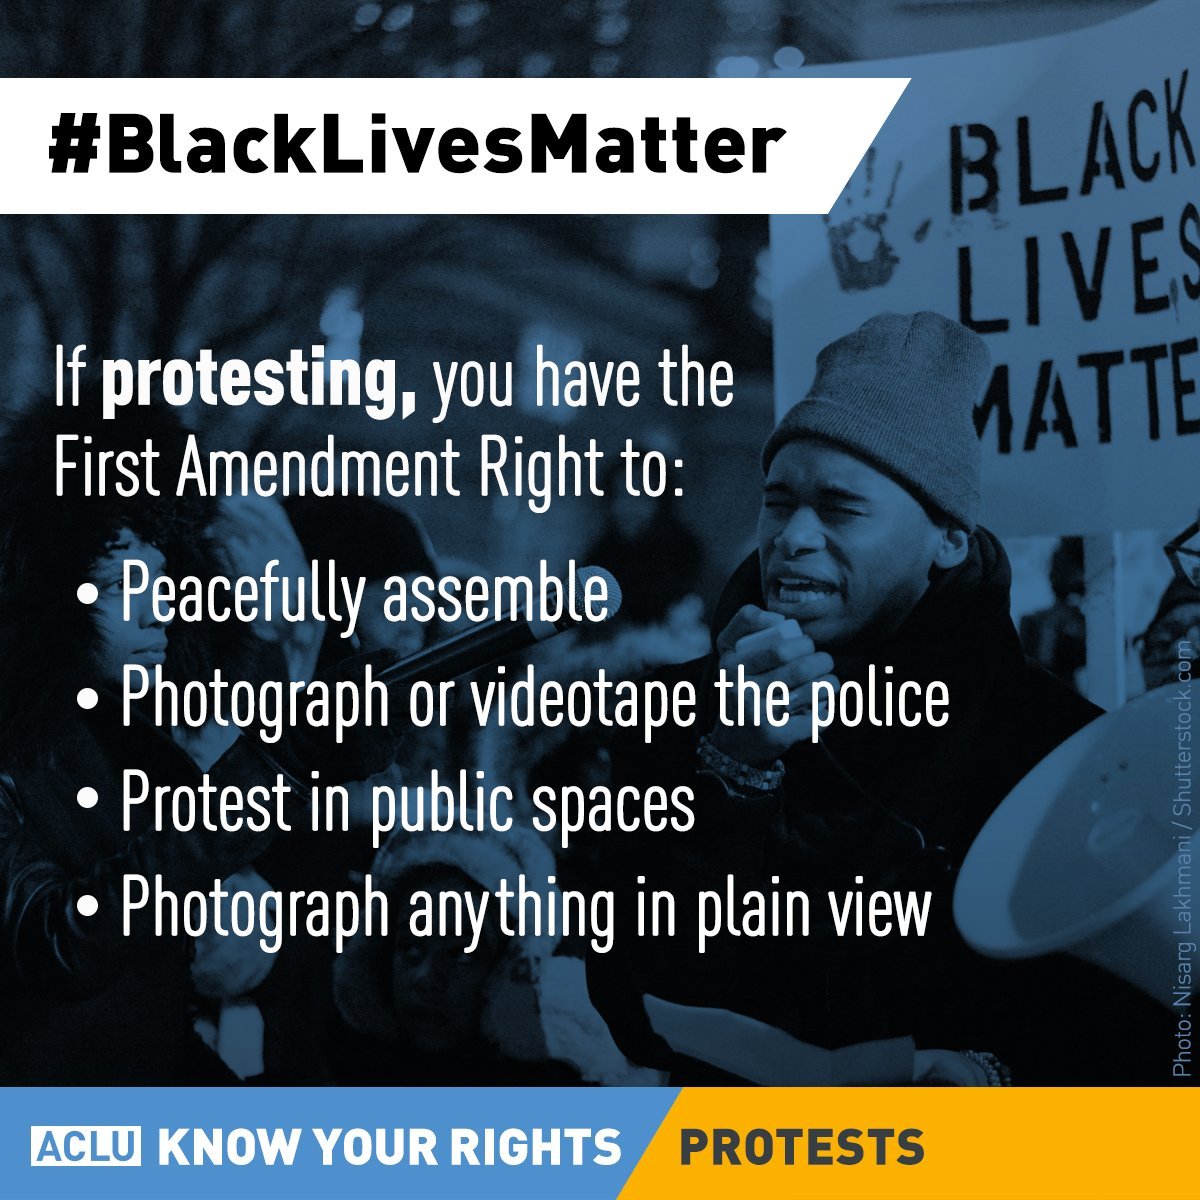 RT @ACLU: If you're heading out to protest tonight, #knowyourrights #blacklivesmatter https://t.co/UjZ8w20kl6 https://t.co/b689ag8kTn